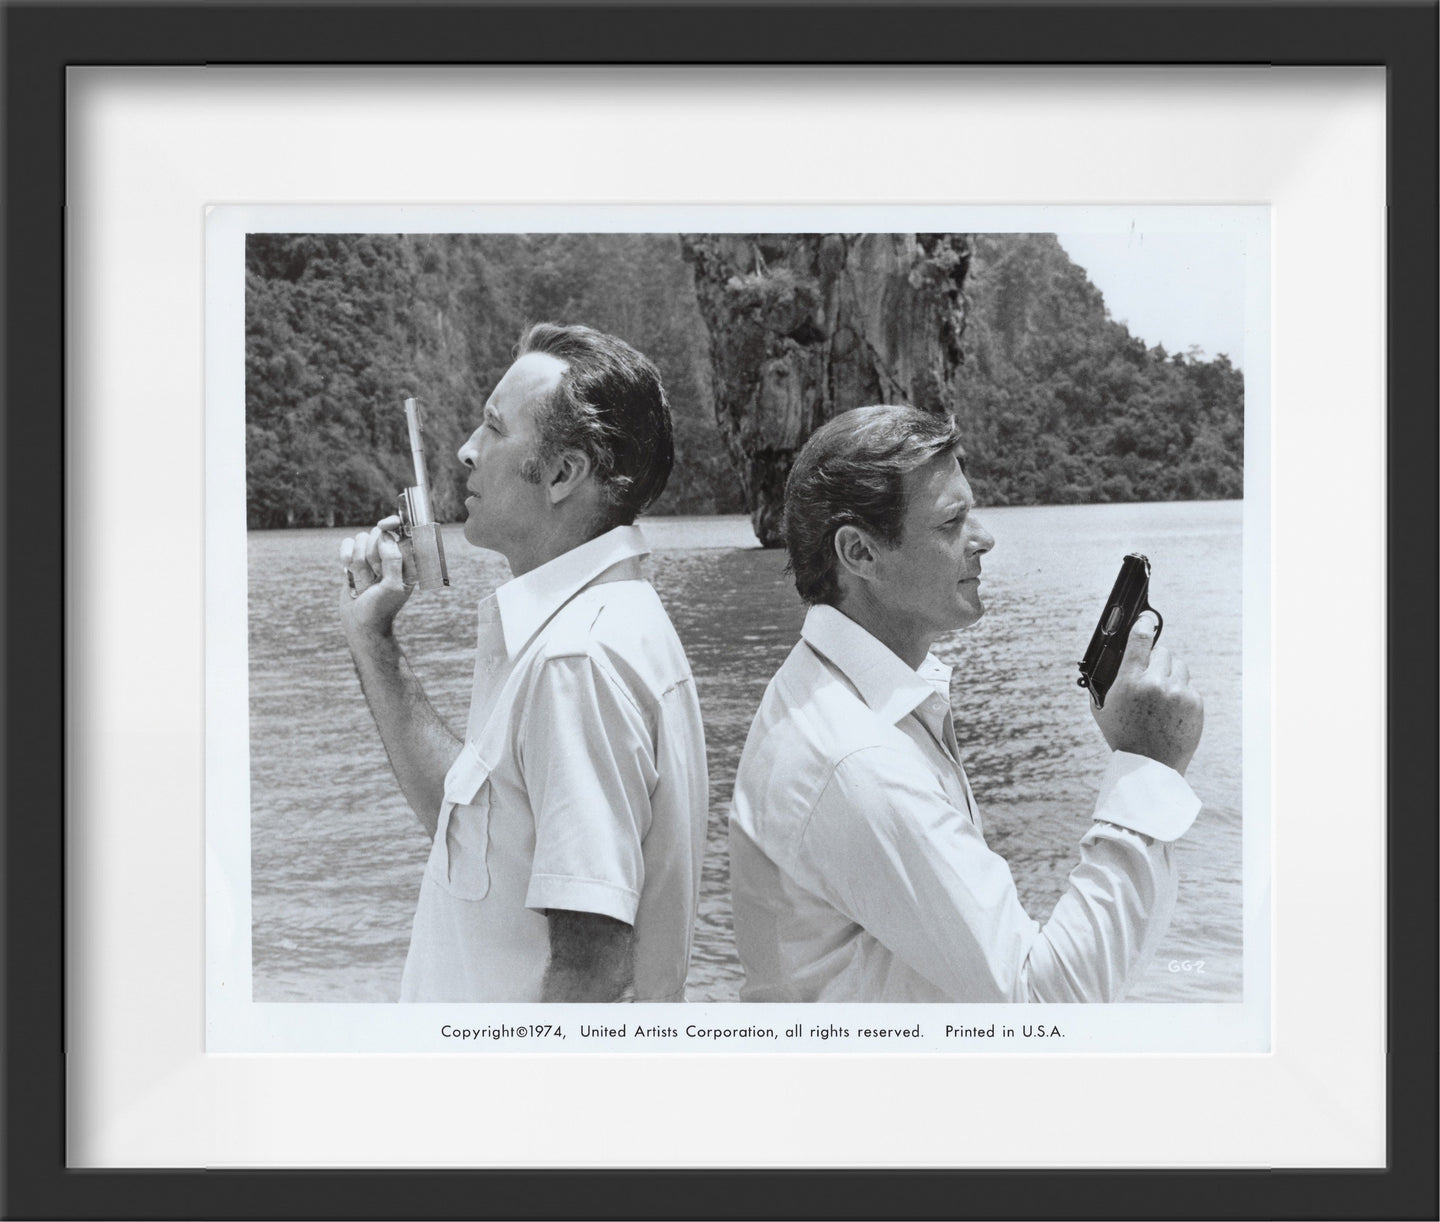 An original theatrical still for the James Bond film The Man With The Golden Gun